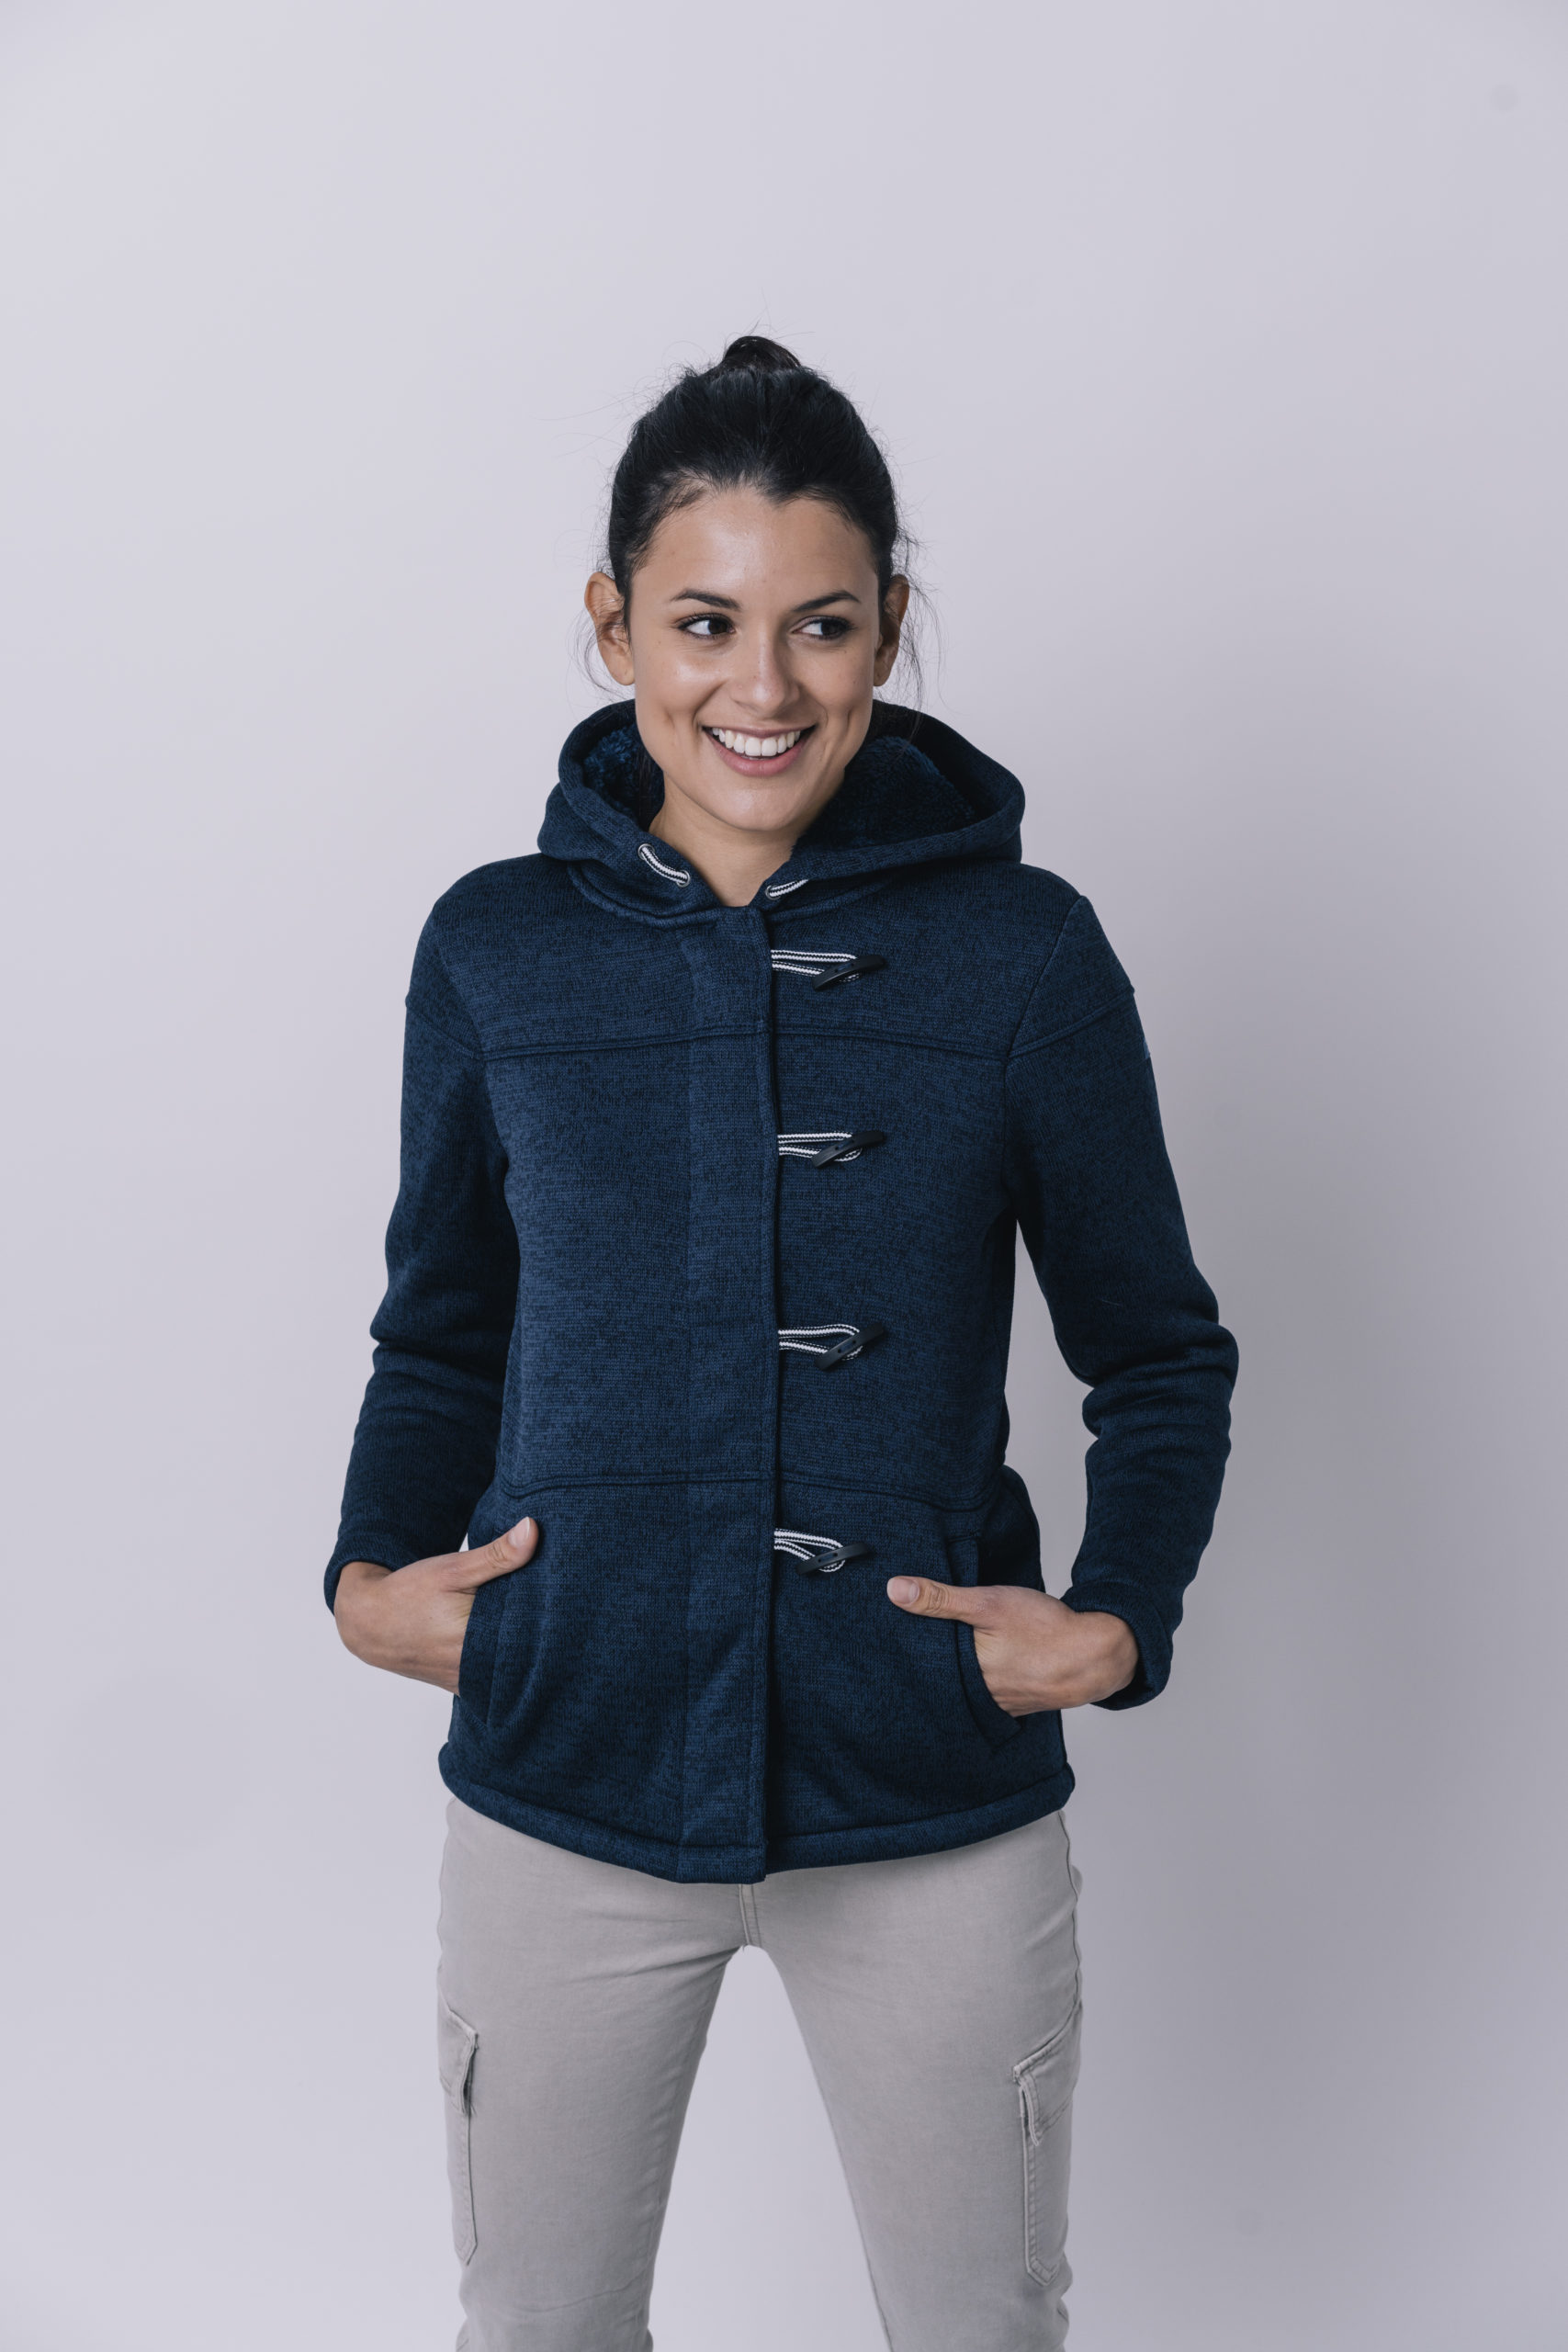 NAVY FLEECE VEST MET CAPUCHON